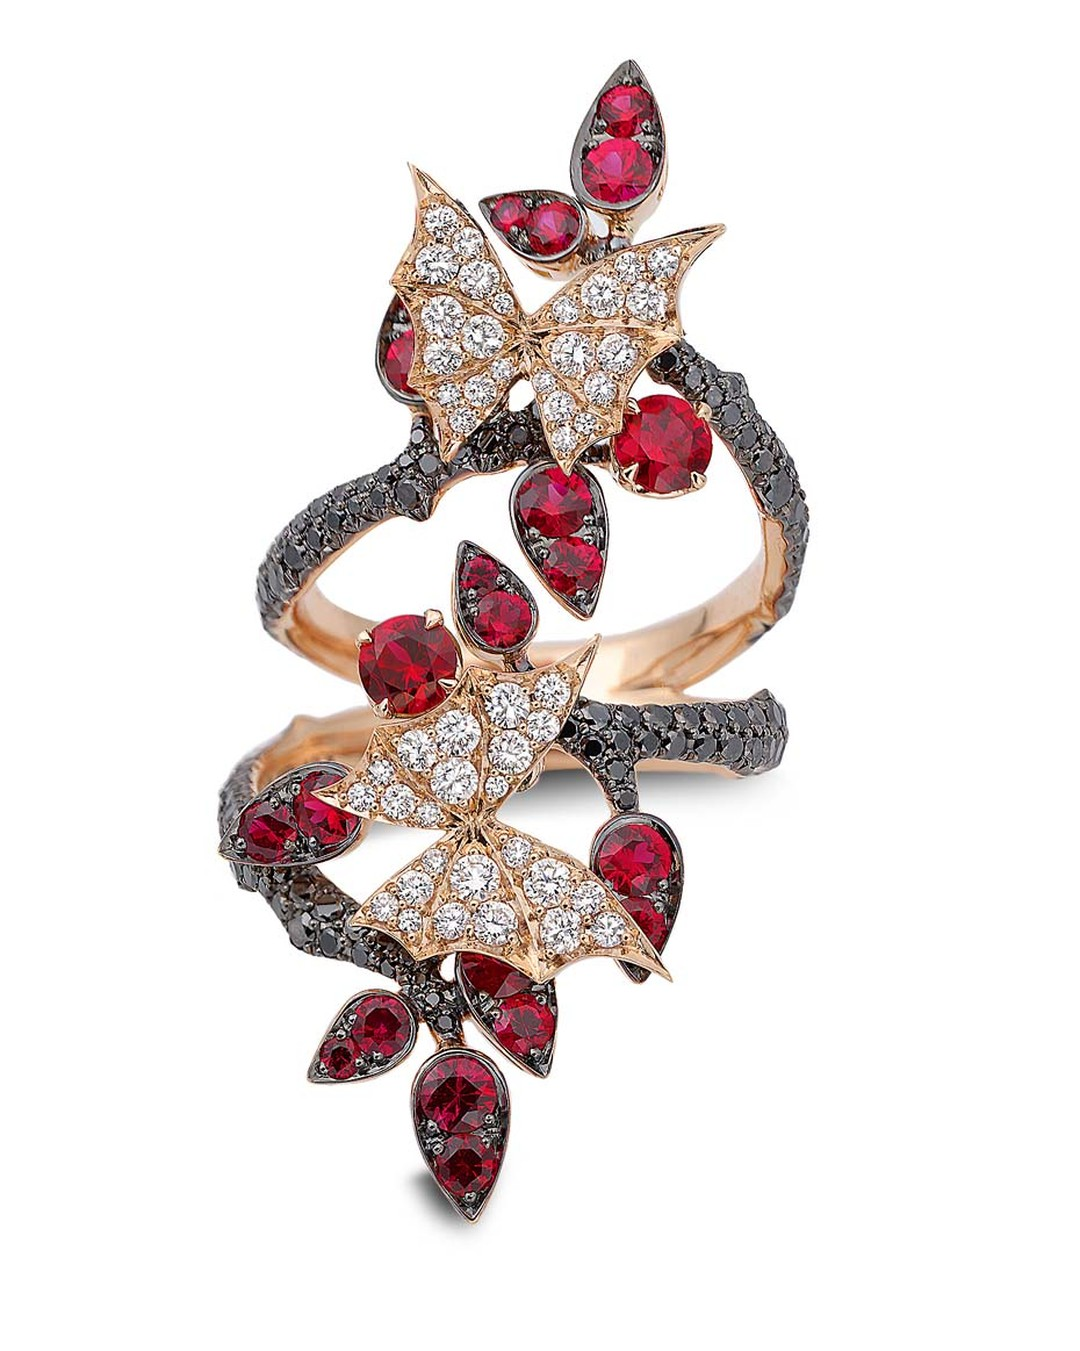 Stephen Webster 'Fly By Night' Couture long finger ring set in rose gold, with rubies and black and white diamonds.